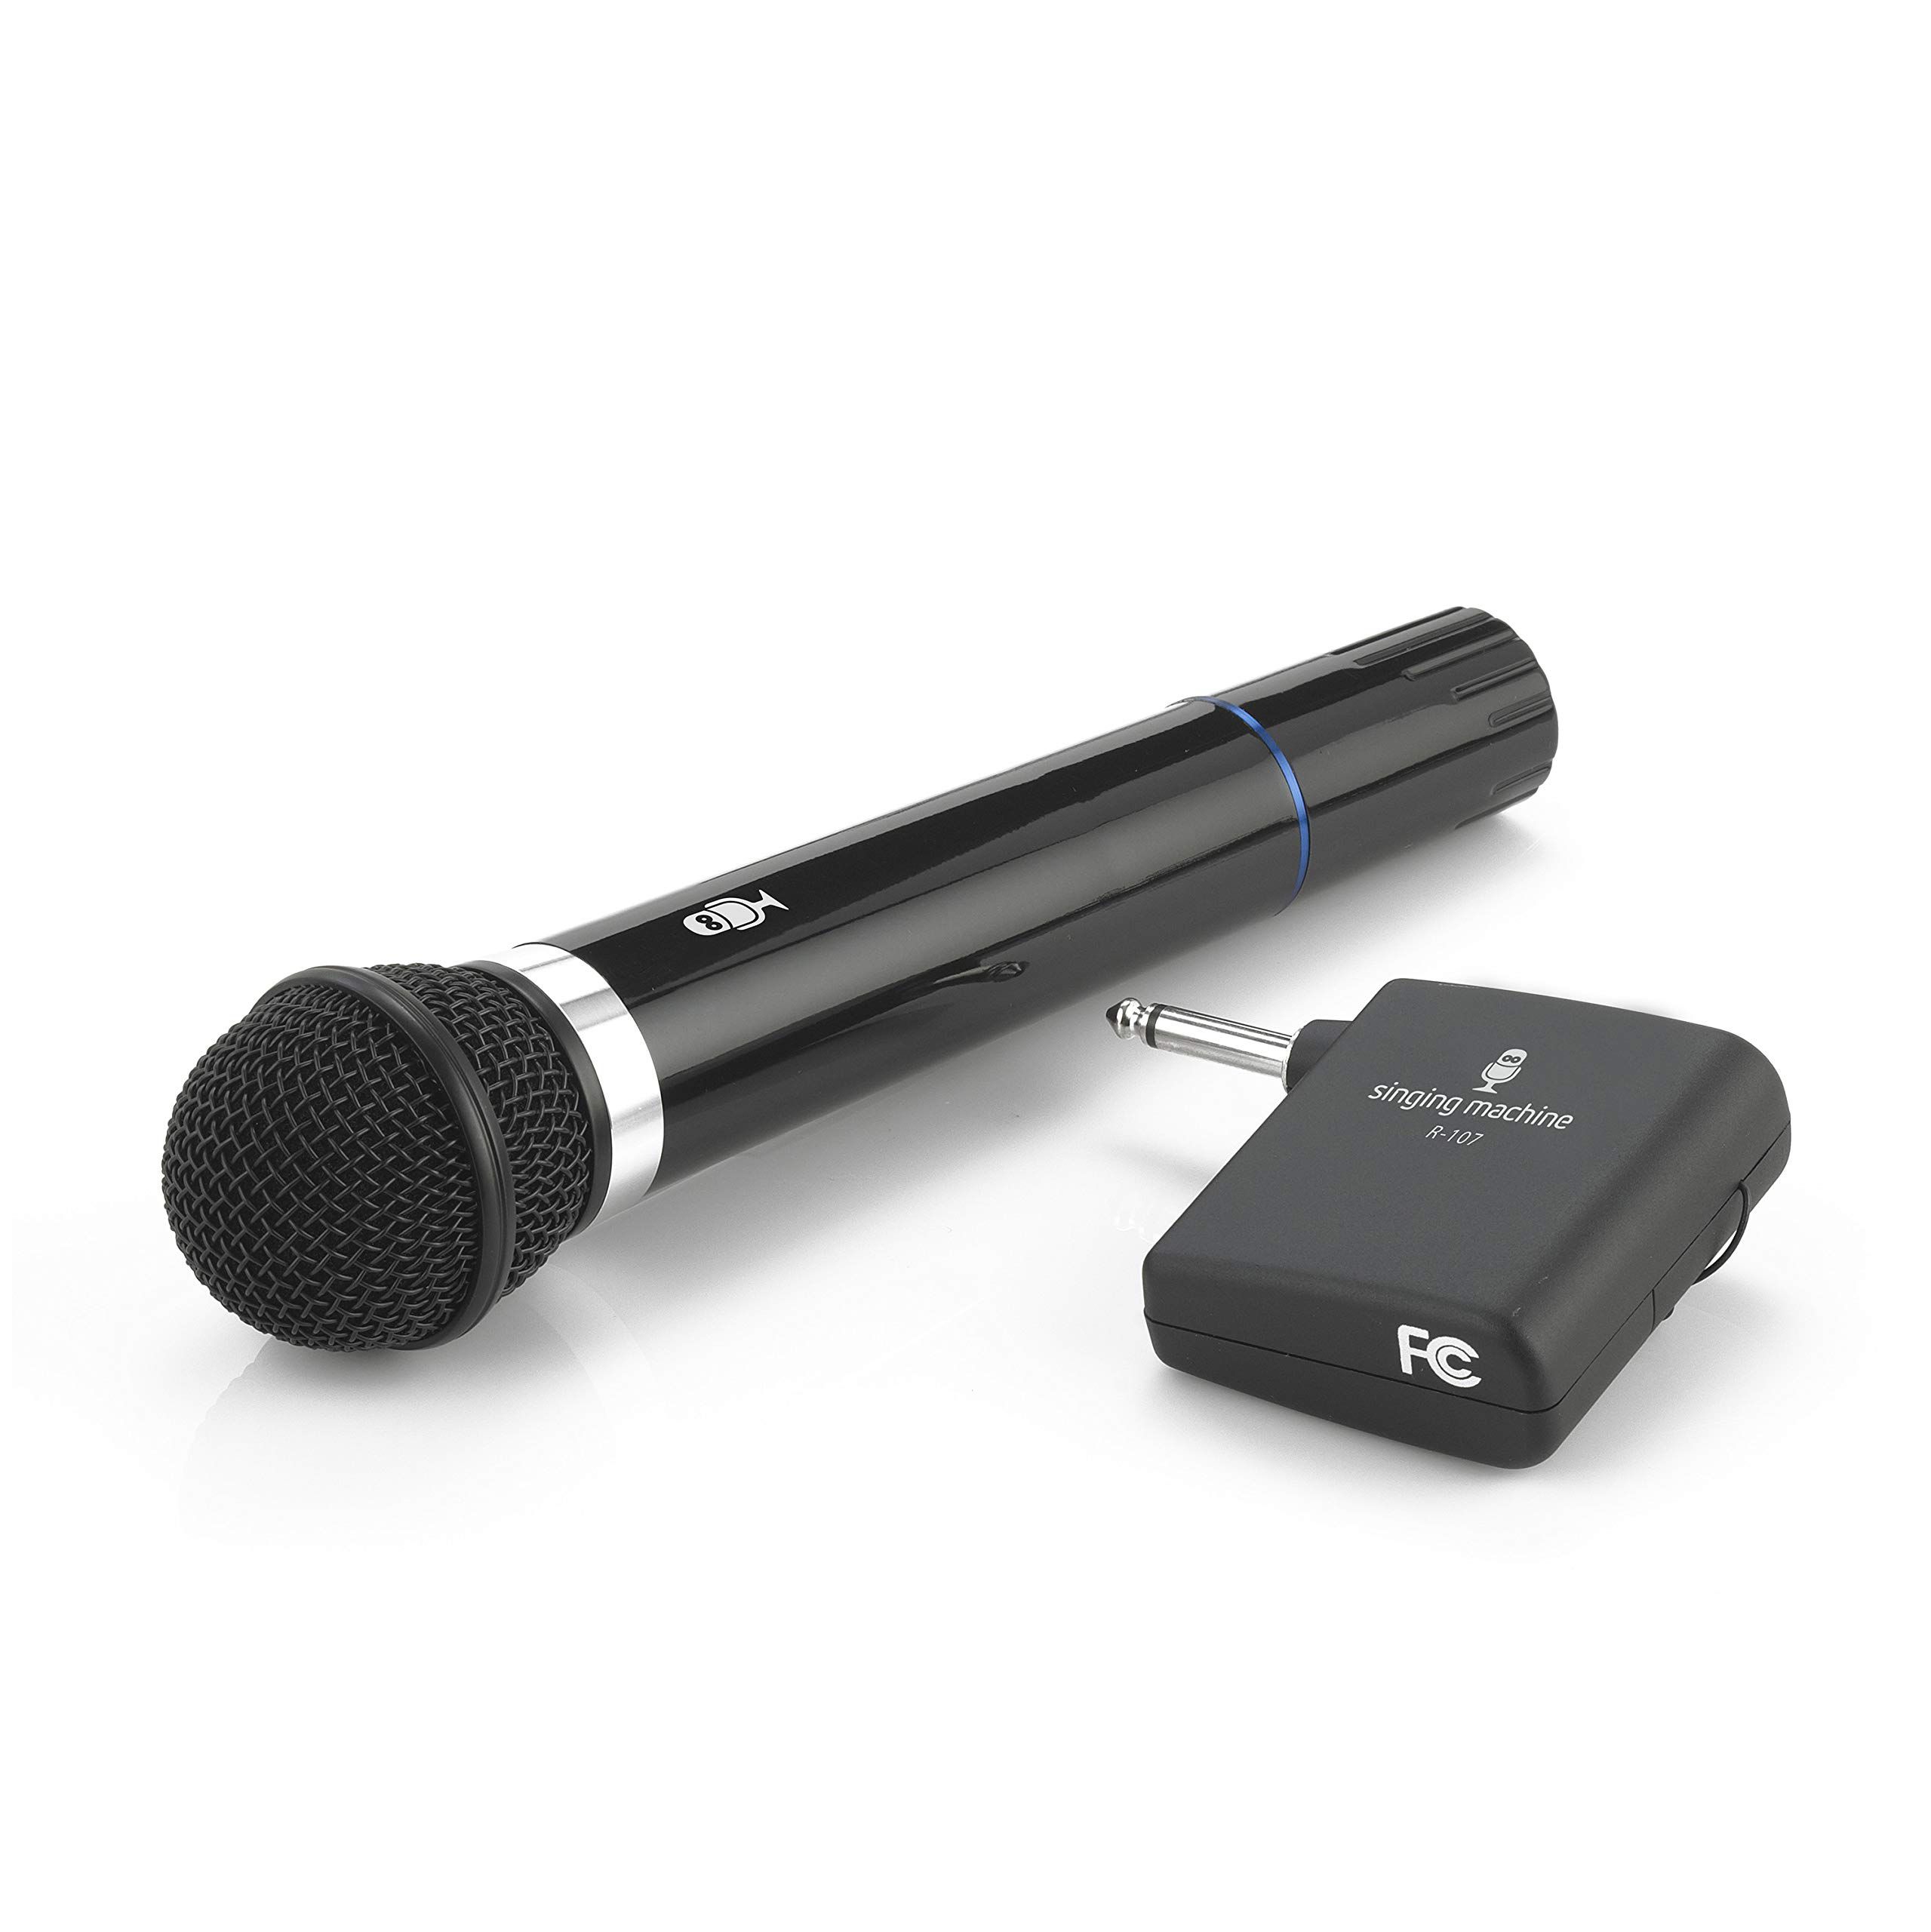 Singing Machine SMM-107 Karaoke Wireless Microphone (Black)